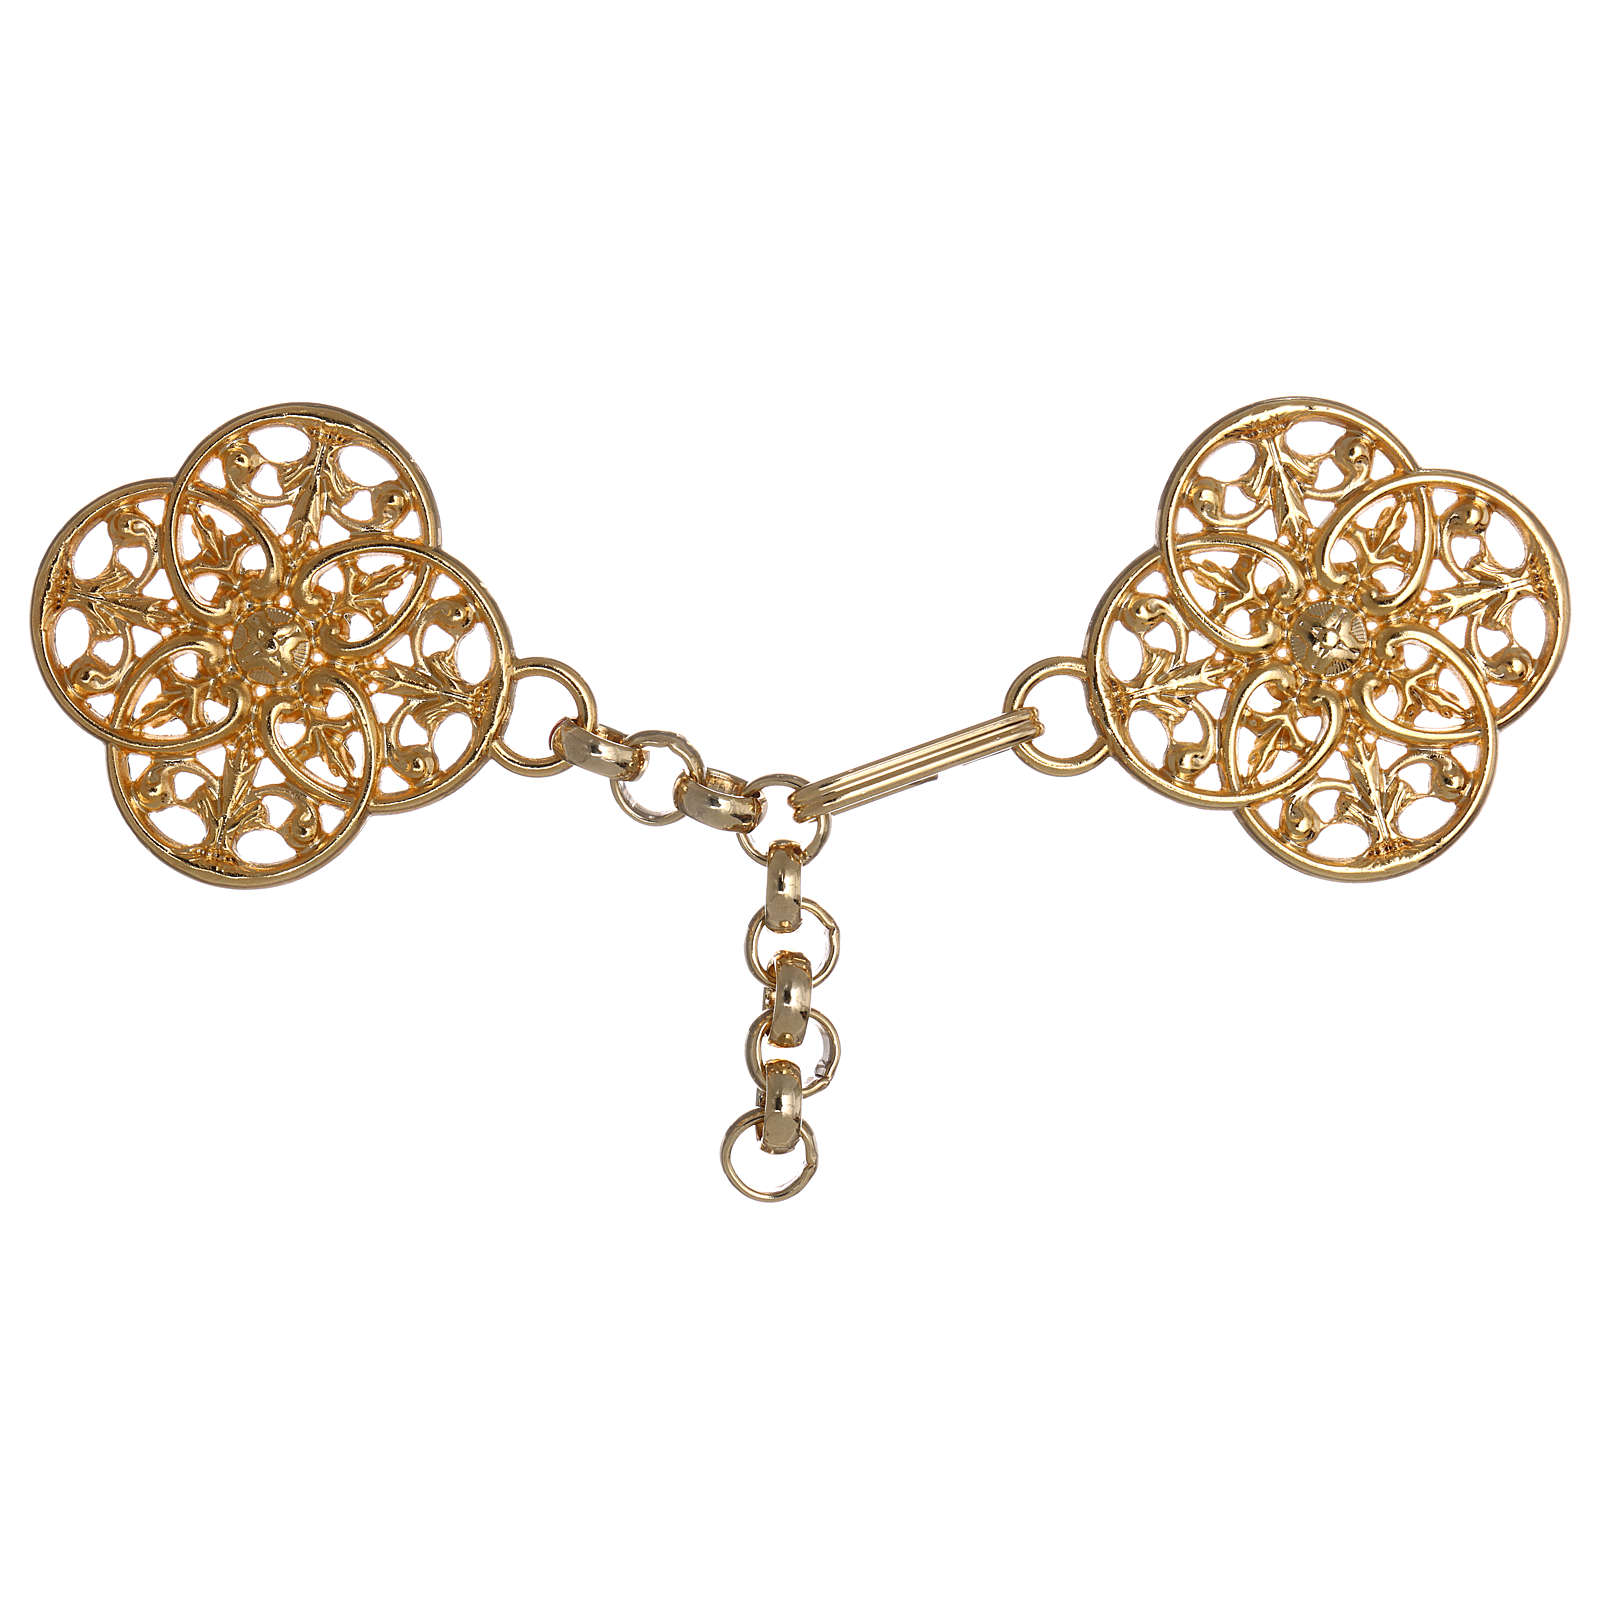 Gold-plated cope clasp with chain 4